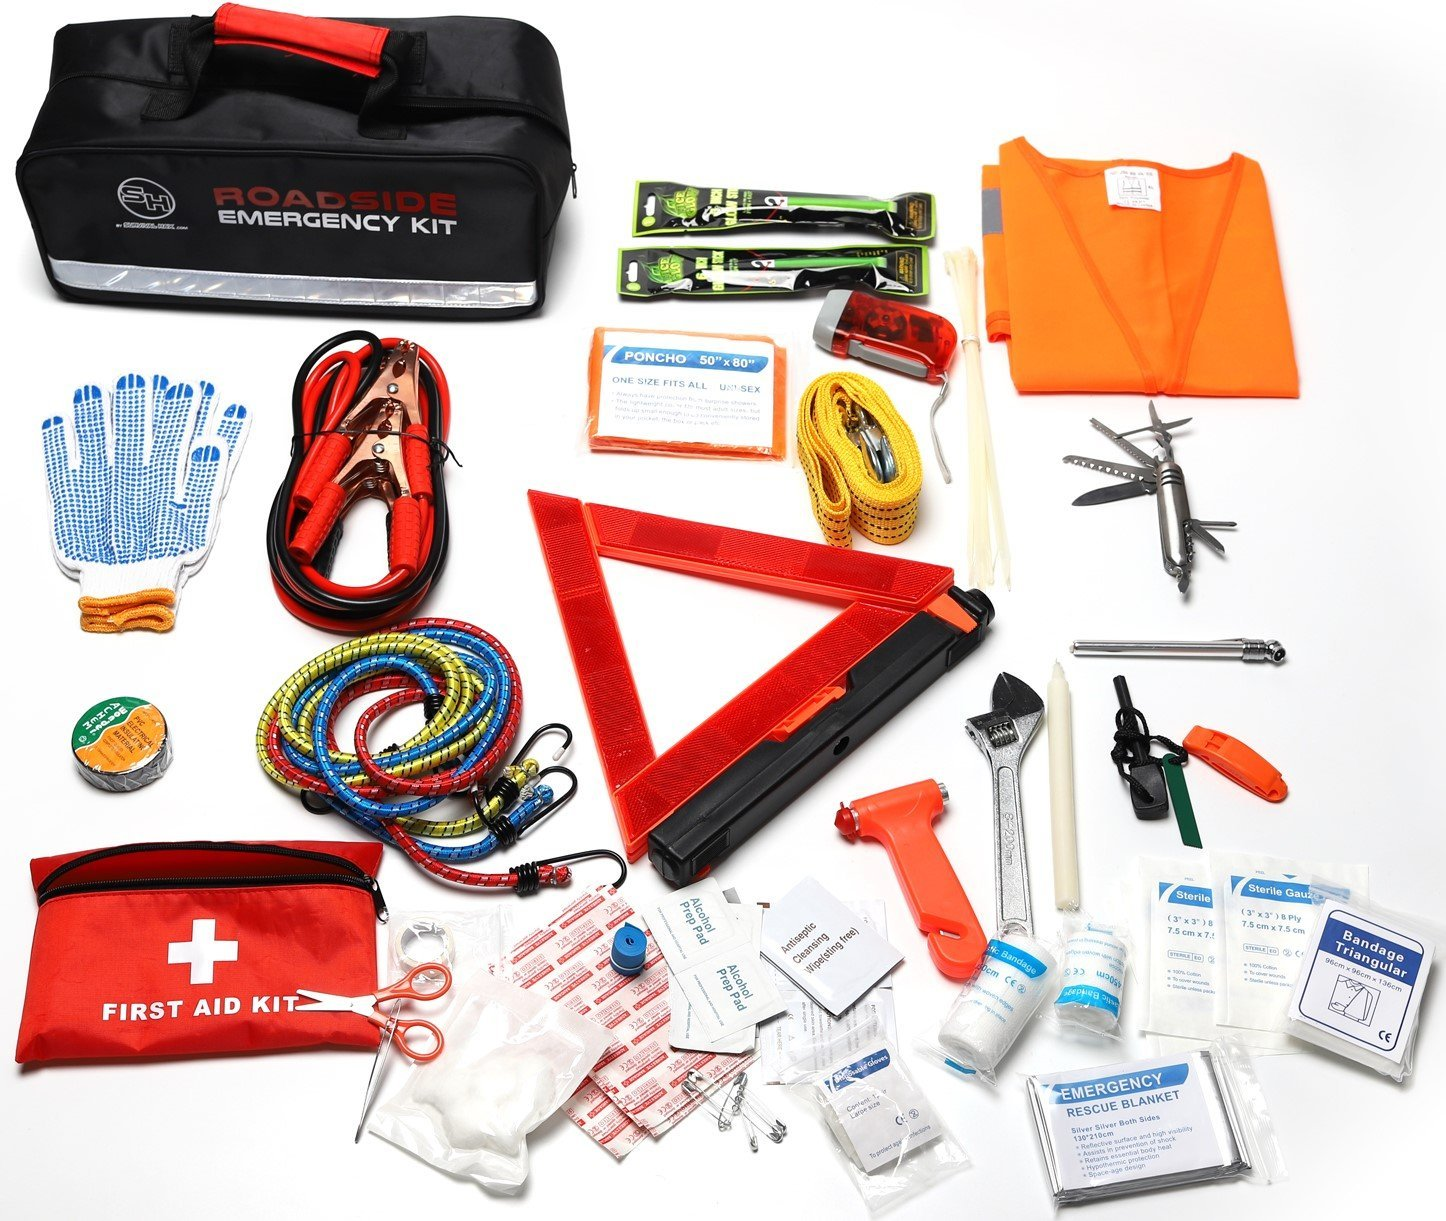 Survival Hax Roadside Emergency Kit contents